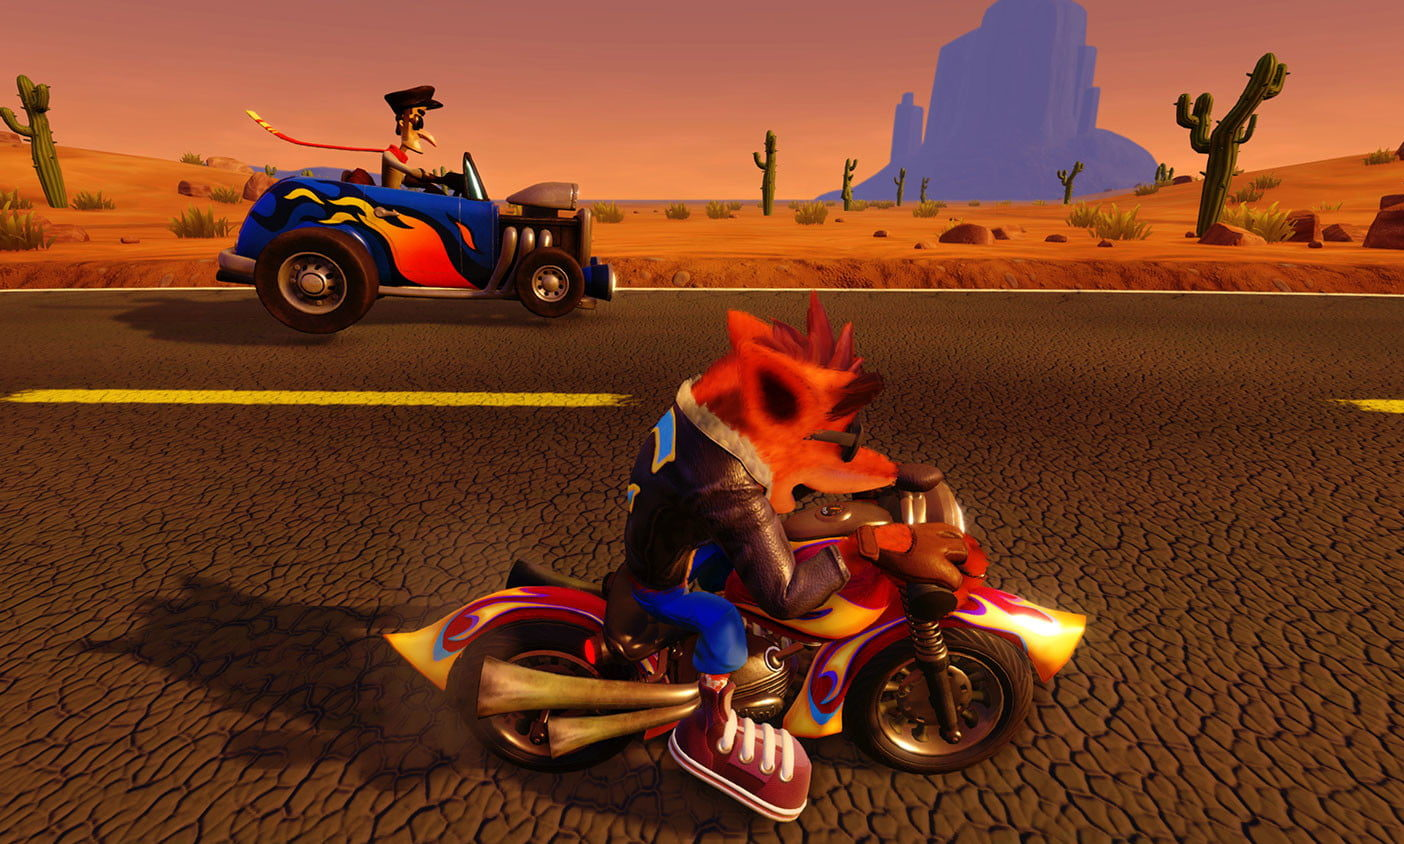 Crash bandicoot motorbike